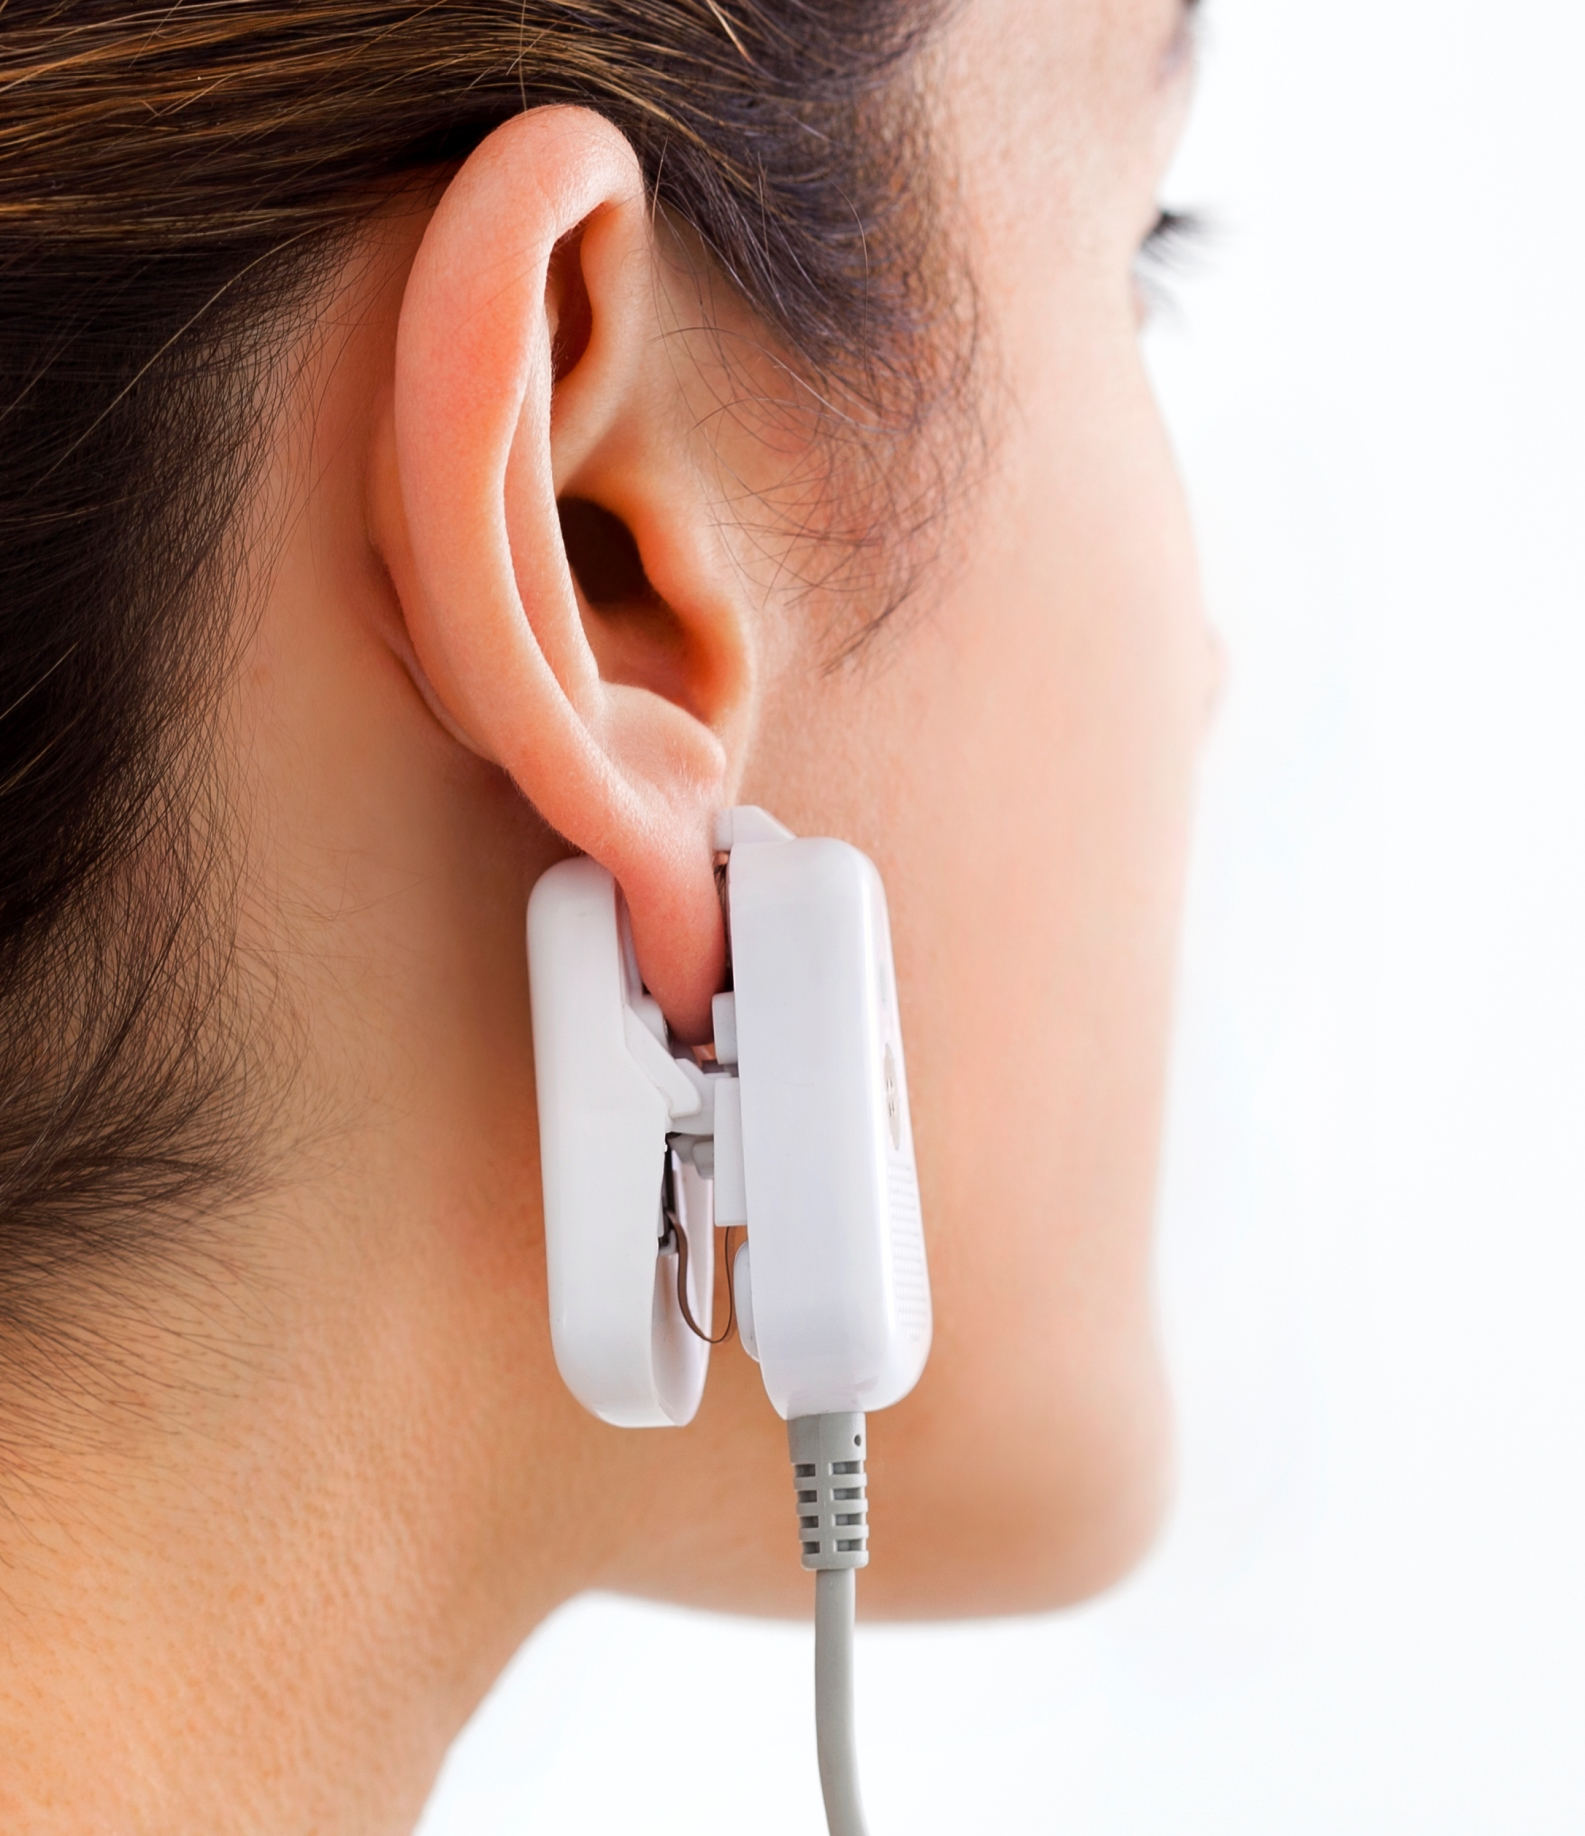 GlucoTrack users test glucose levels with an ear clip attached to a handheld control unit. Photo: courtesy